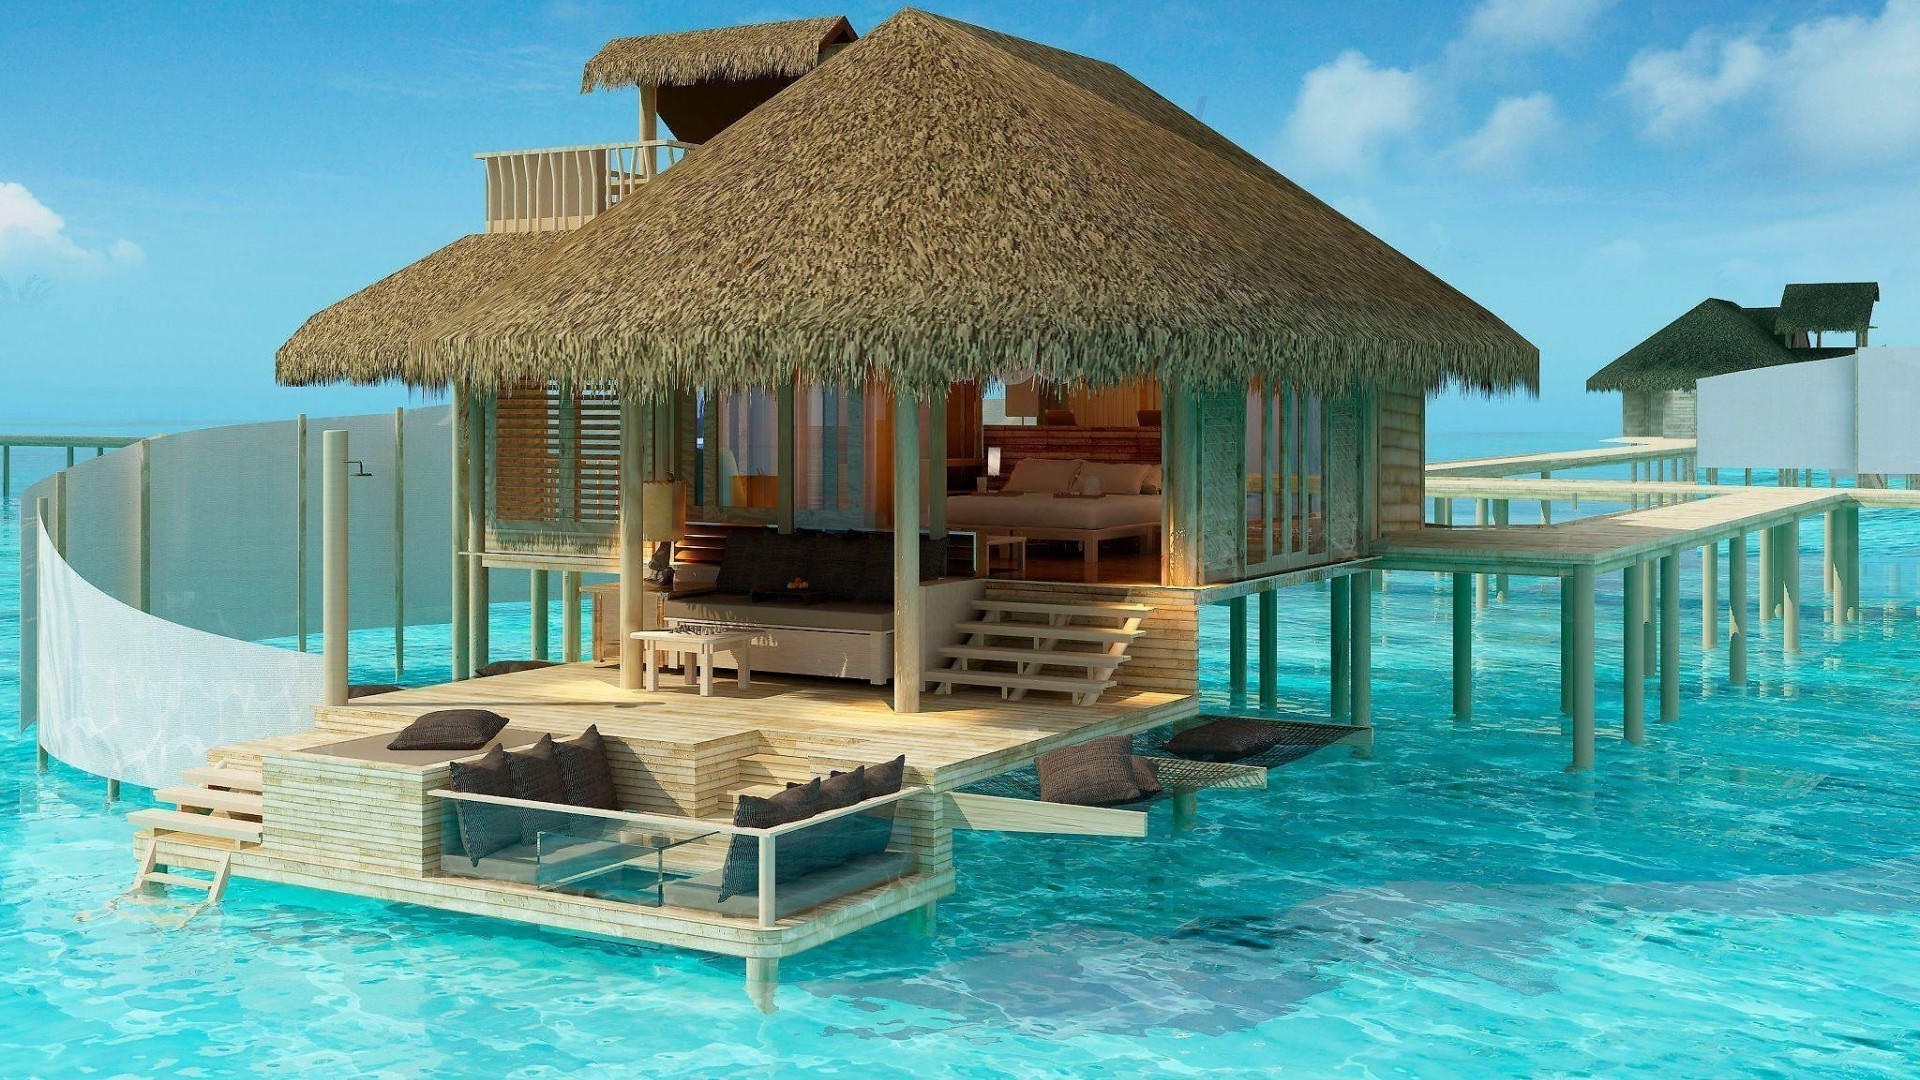 houses and cottages resort swimming hotel tropical bungalow chair exotic vacation pool relaxation luxury summer villa umbrella water paradise beach ocean turquoise leisure